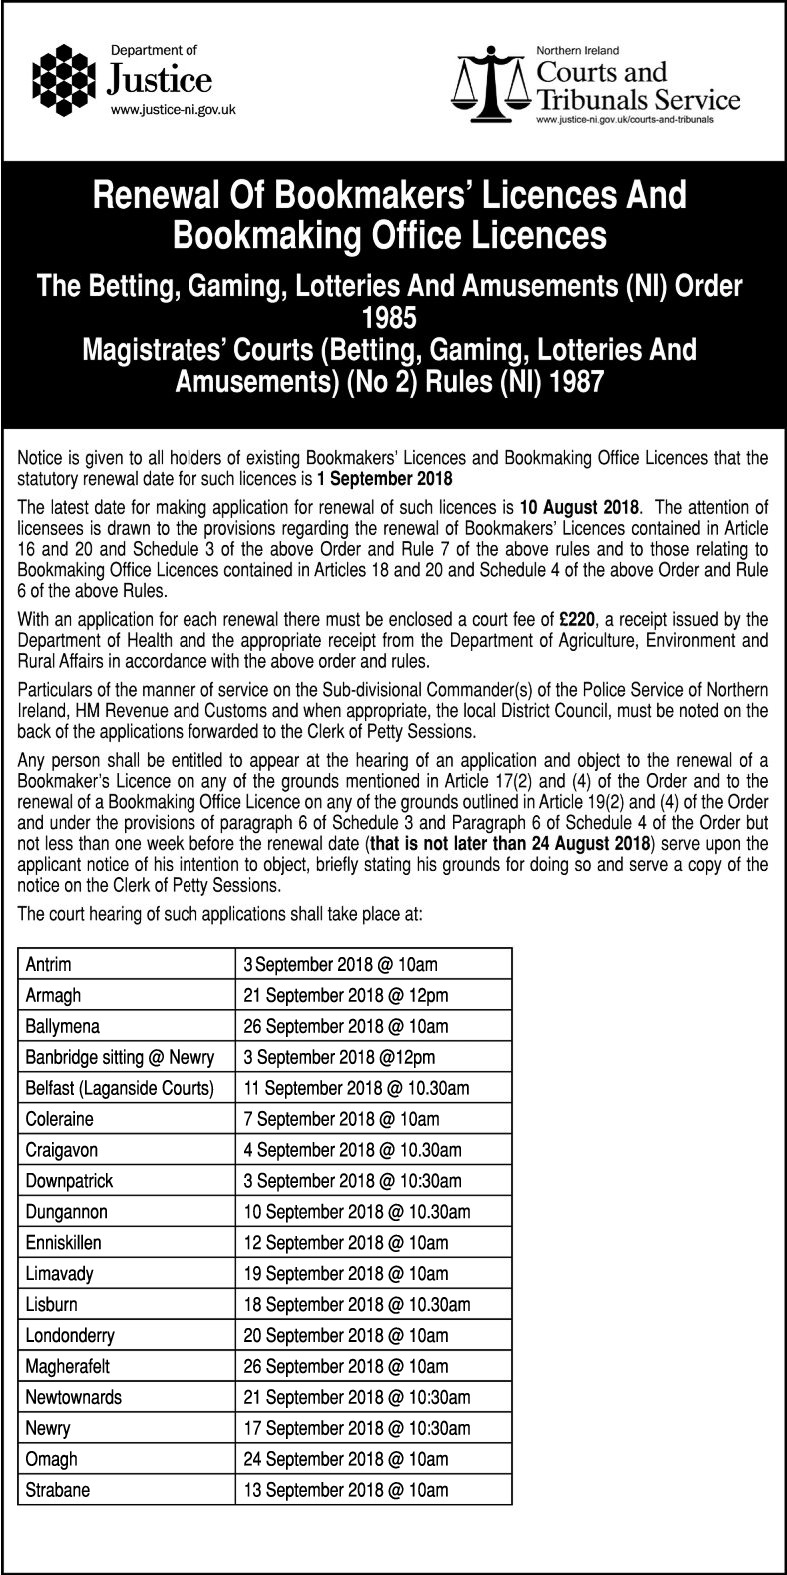 RENEWAL OF BOOKMAKERS LICENCE - NOTICE - Legal Notices in Northern Ireland